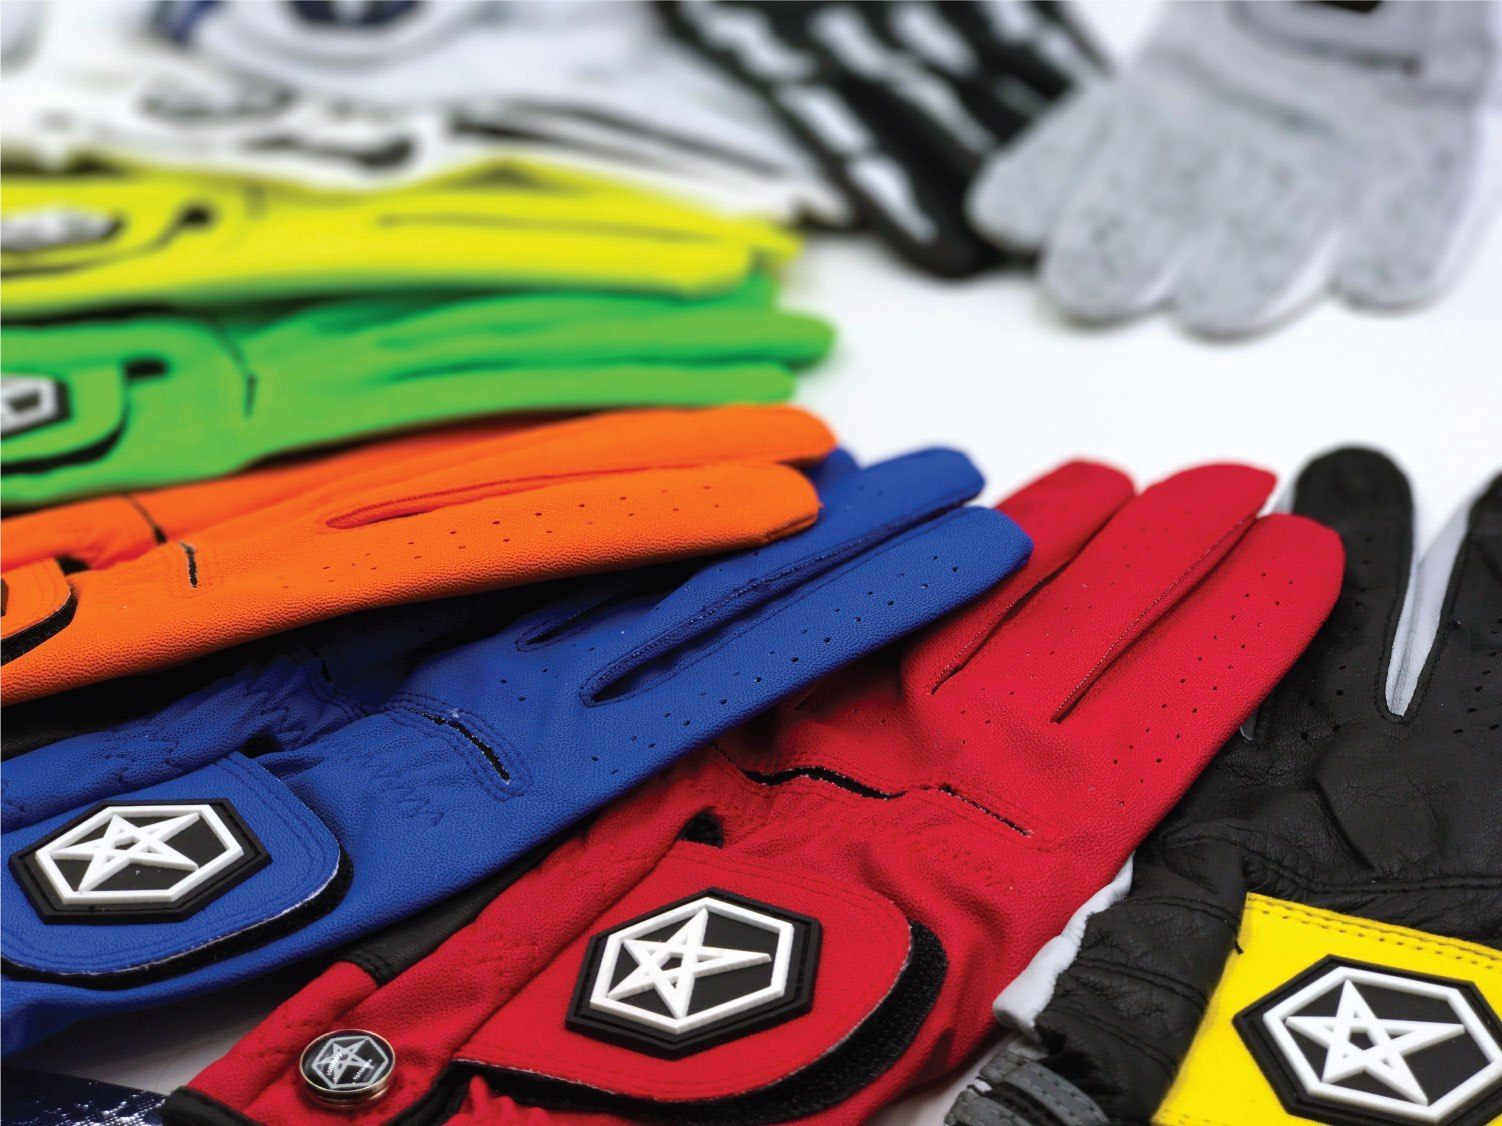 Asher Golf Colored Glove Collection